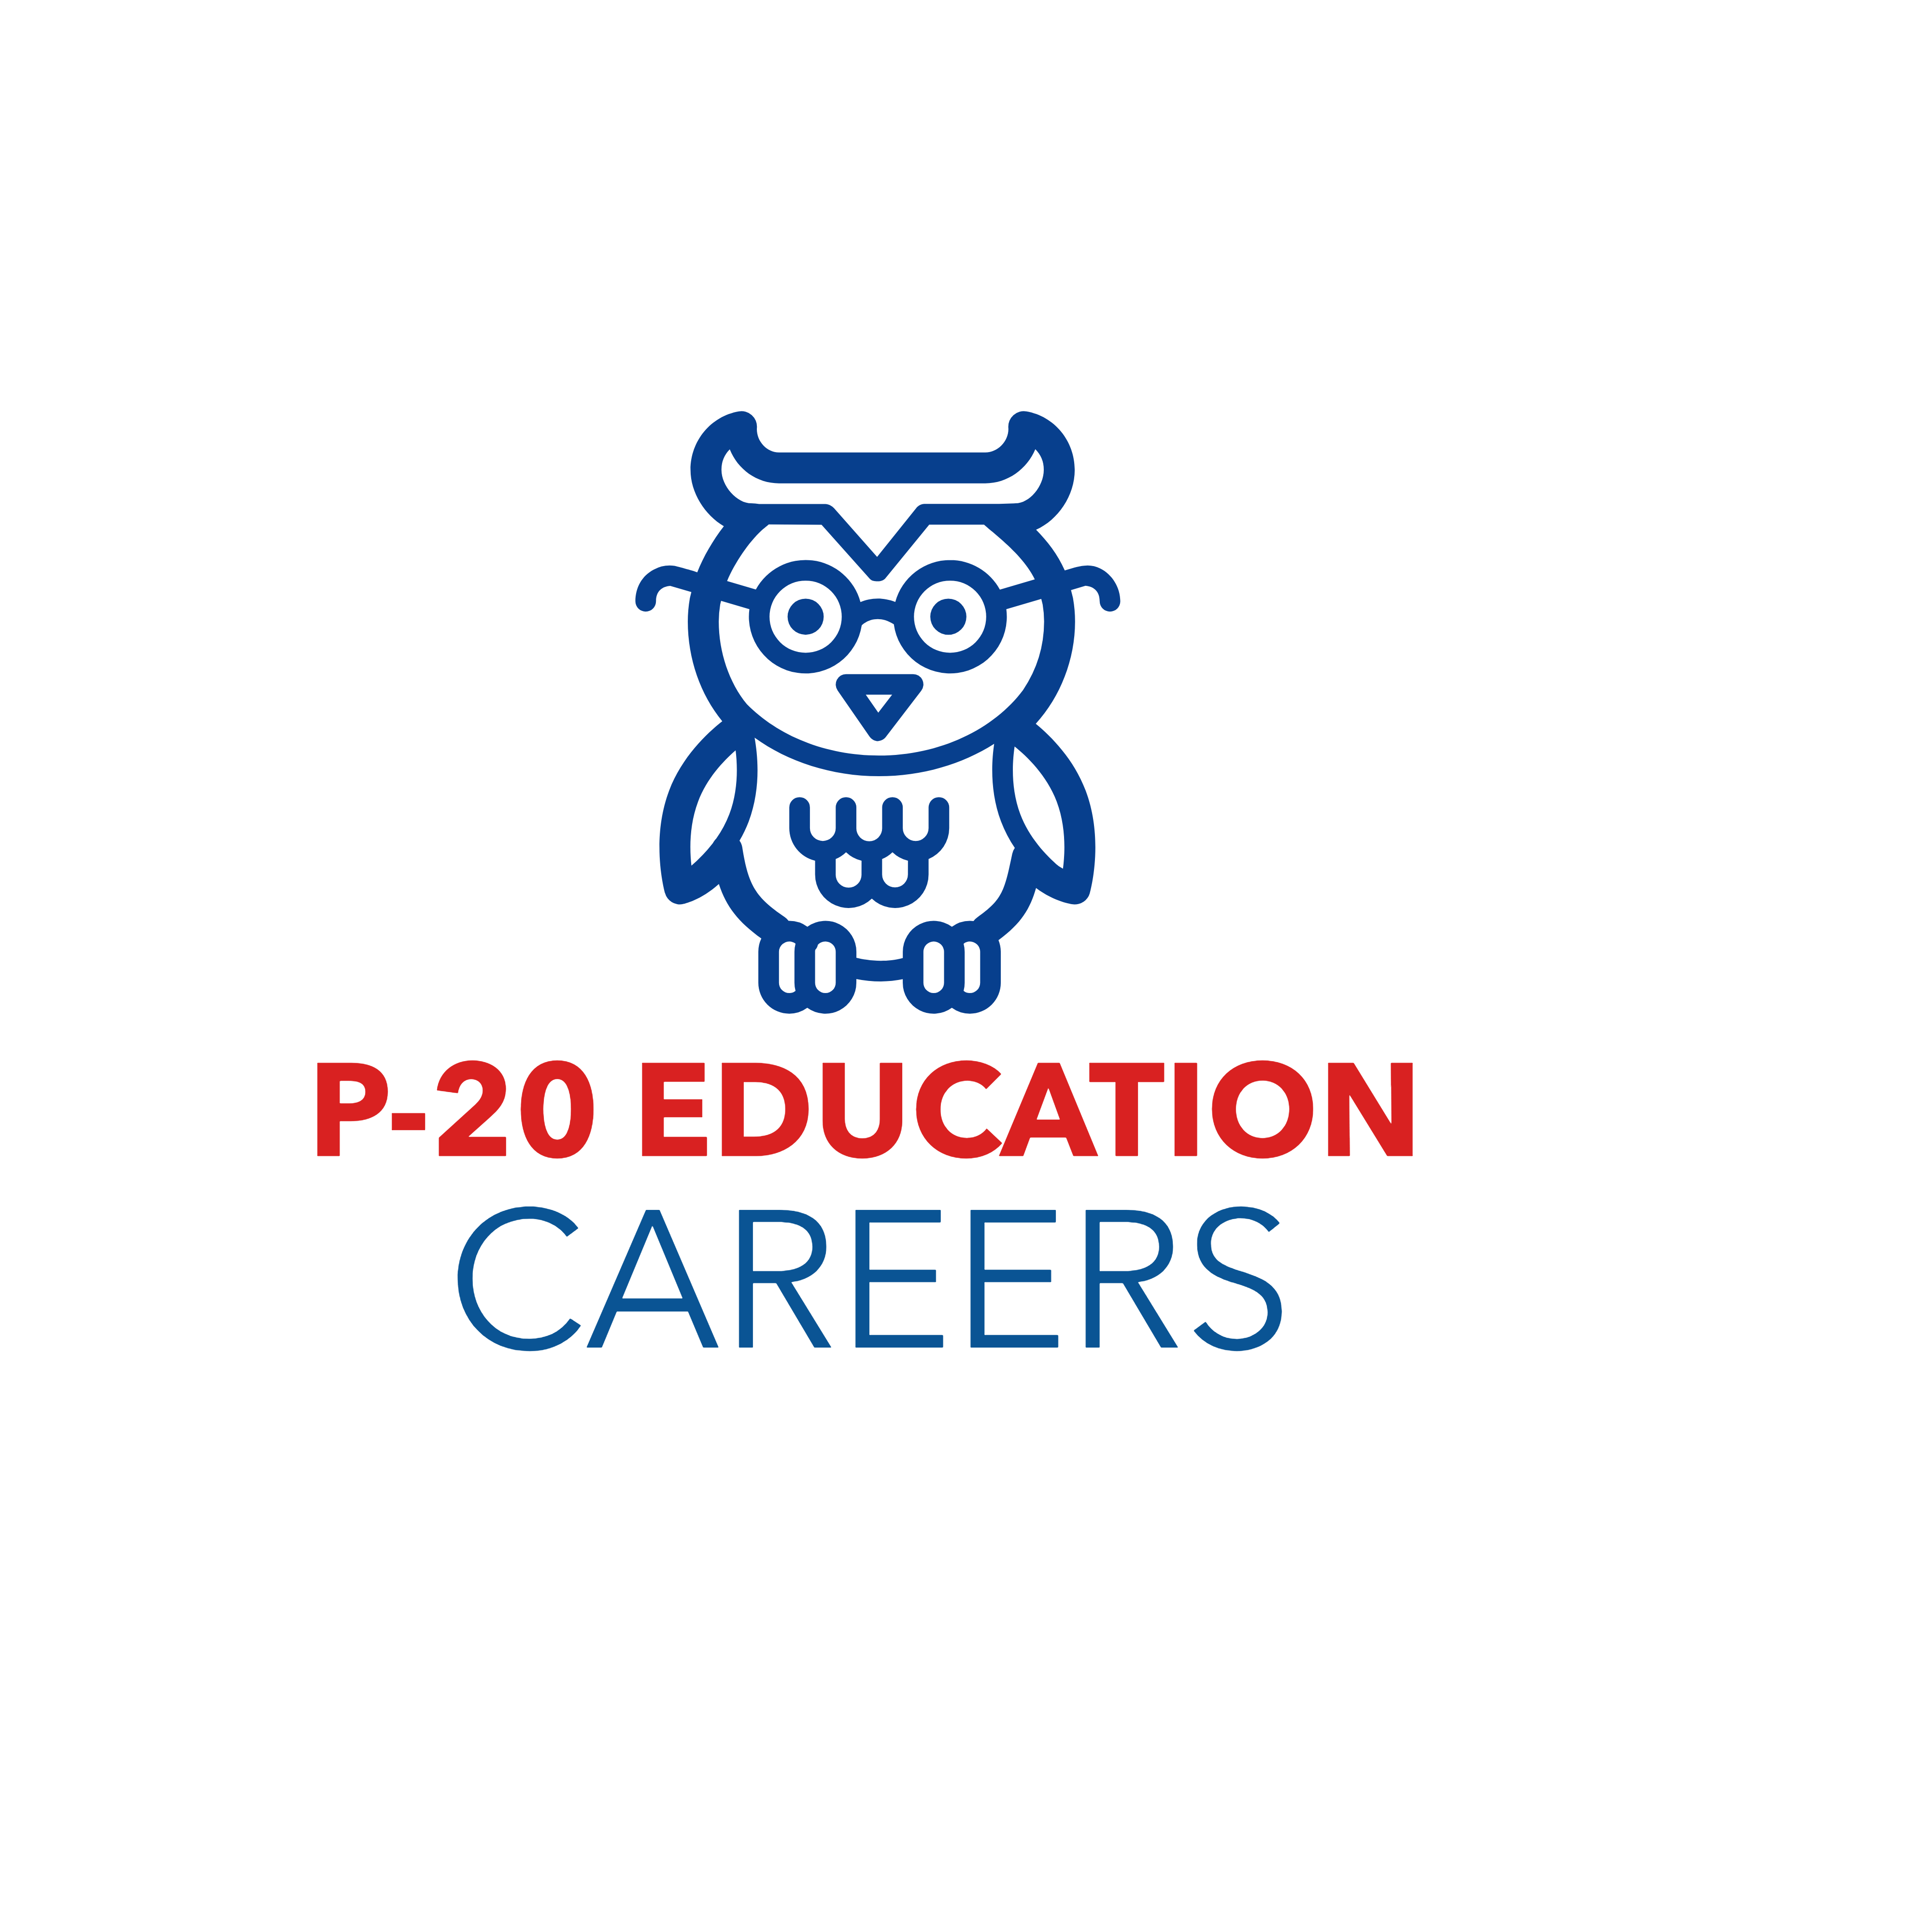 P-20 Education Careers